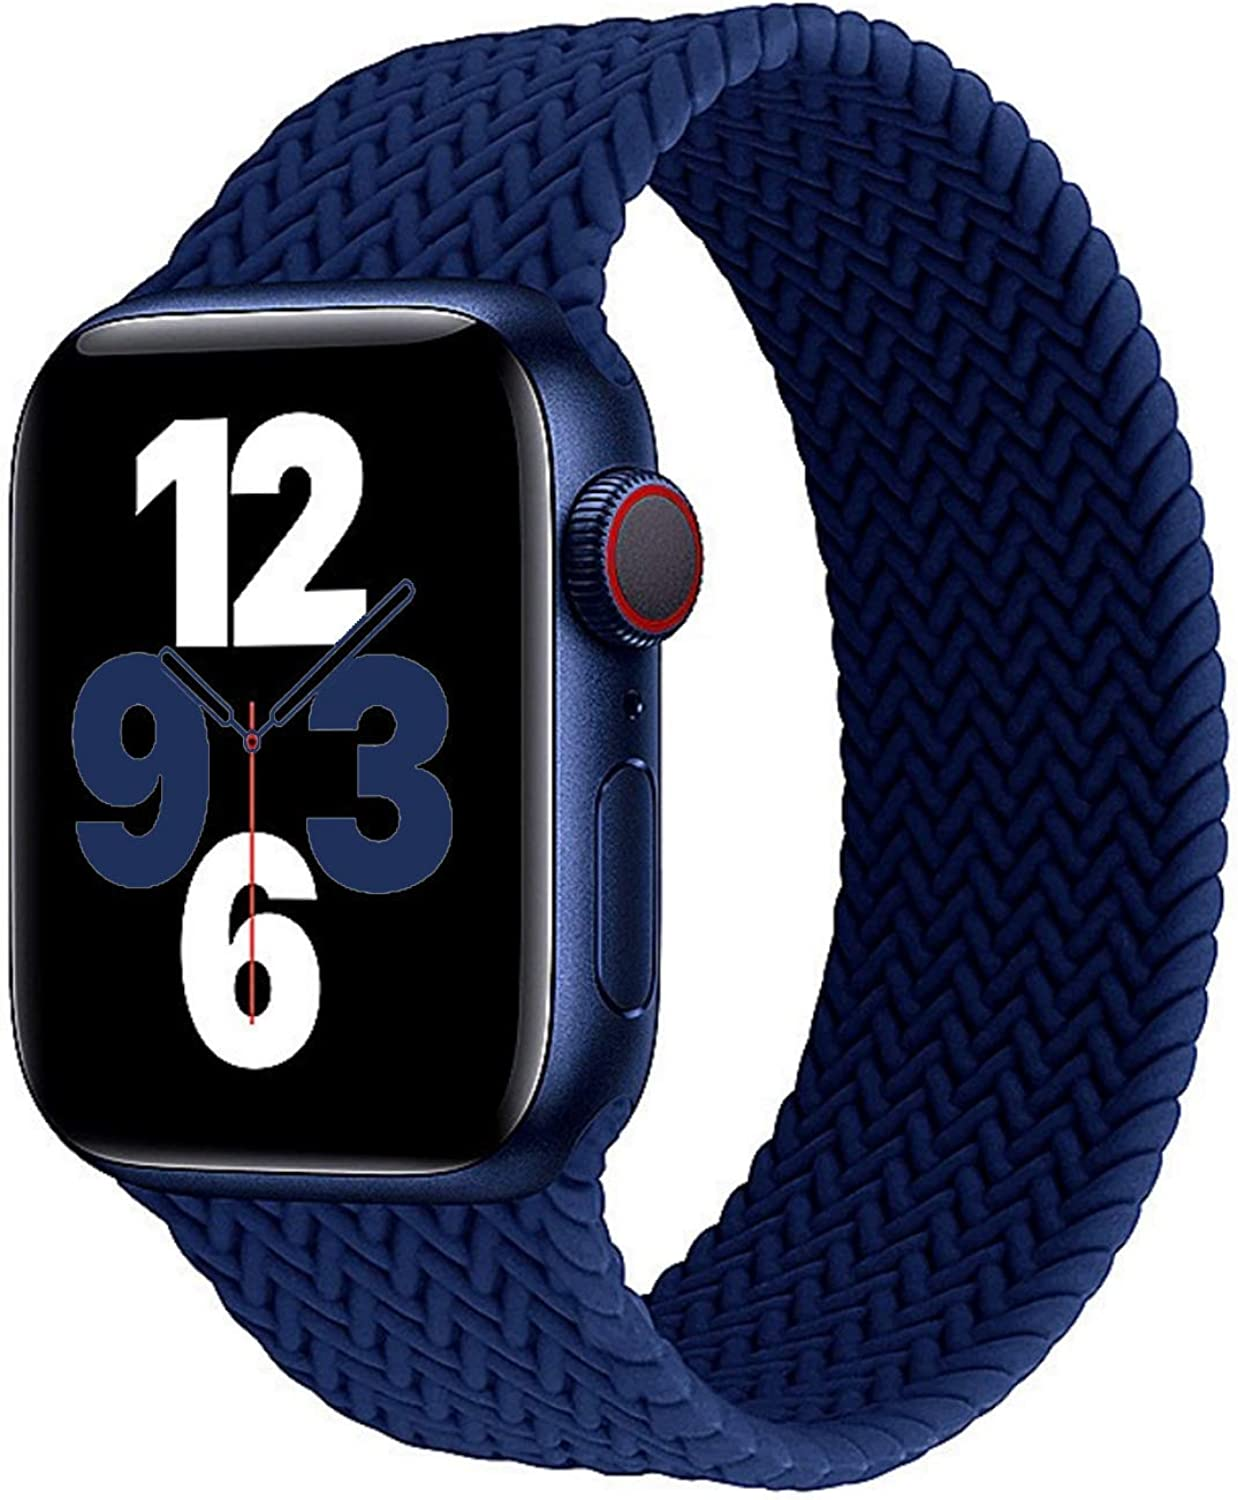 LAGOON Stretchy Silicone Solo Loop Bands Compatible with Apple Watch 38mm 40mm 42mm 44mm iWatch Series 6 SE 5 4 3 2 1 Strap, Silicone Braided Elastic Sport Strap Compatible for iWatch Series 6/5/4/3/2/1/SE